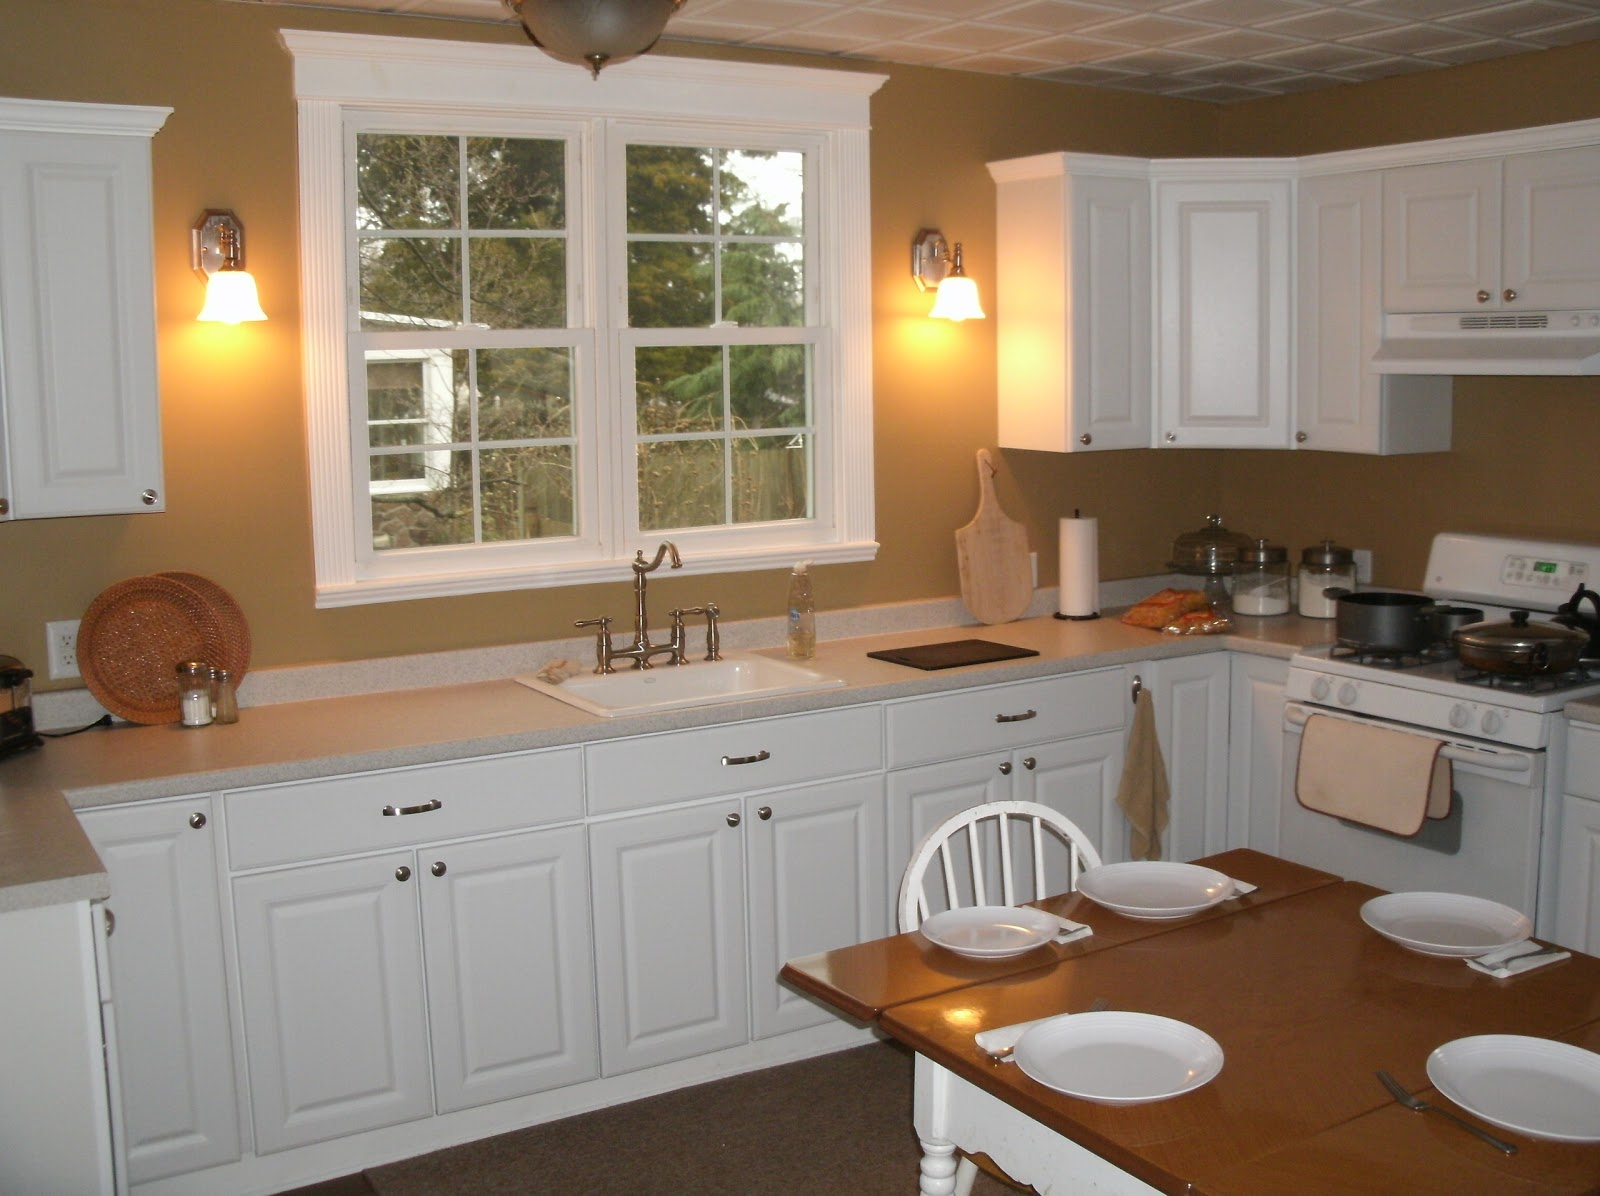 ... Kitchen designs, Kitchen remodeling contractors Gibbstown NJ, South